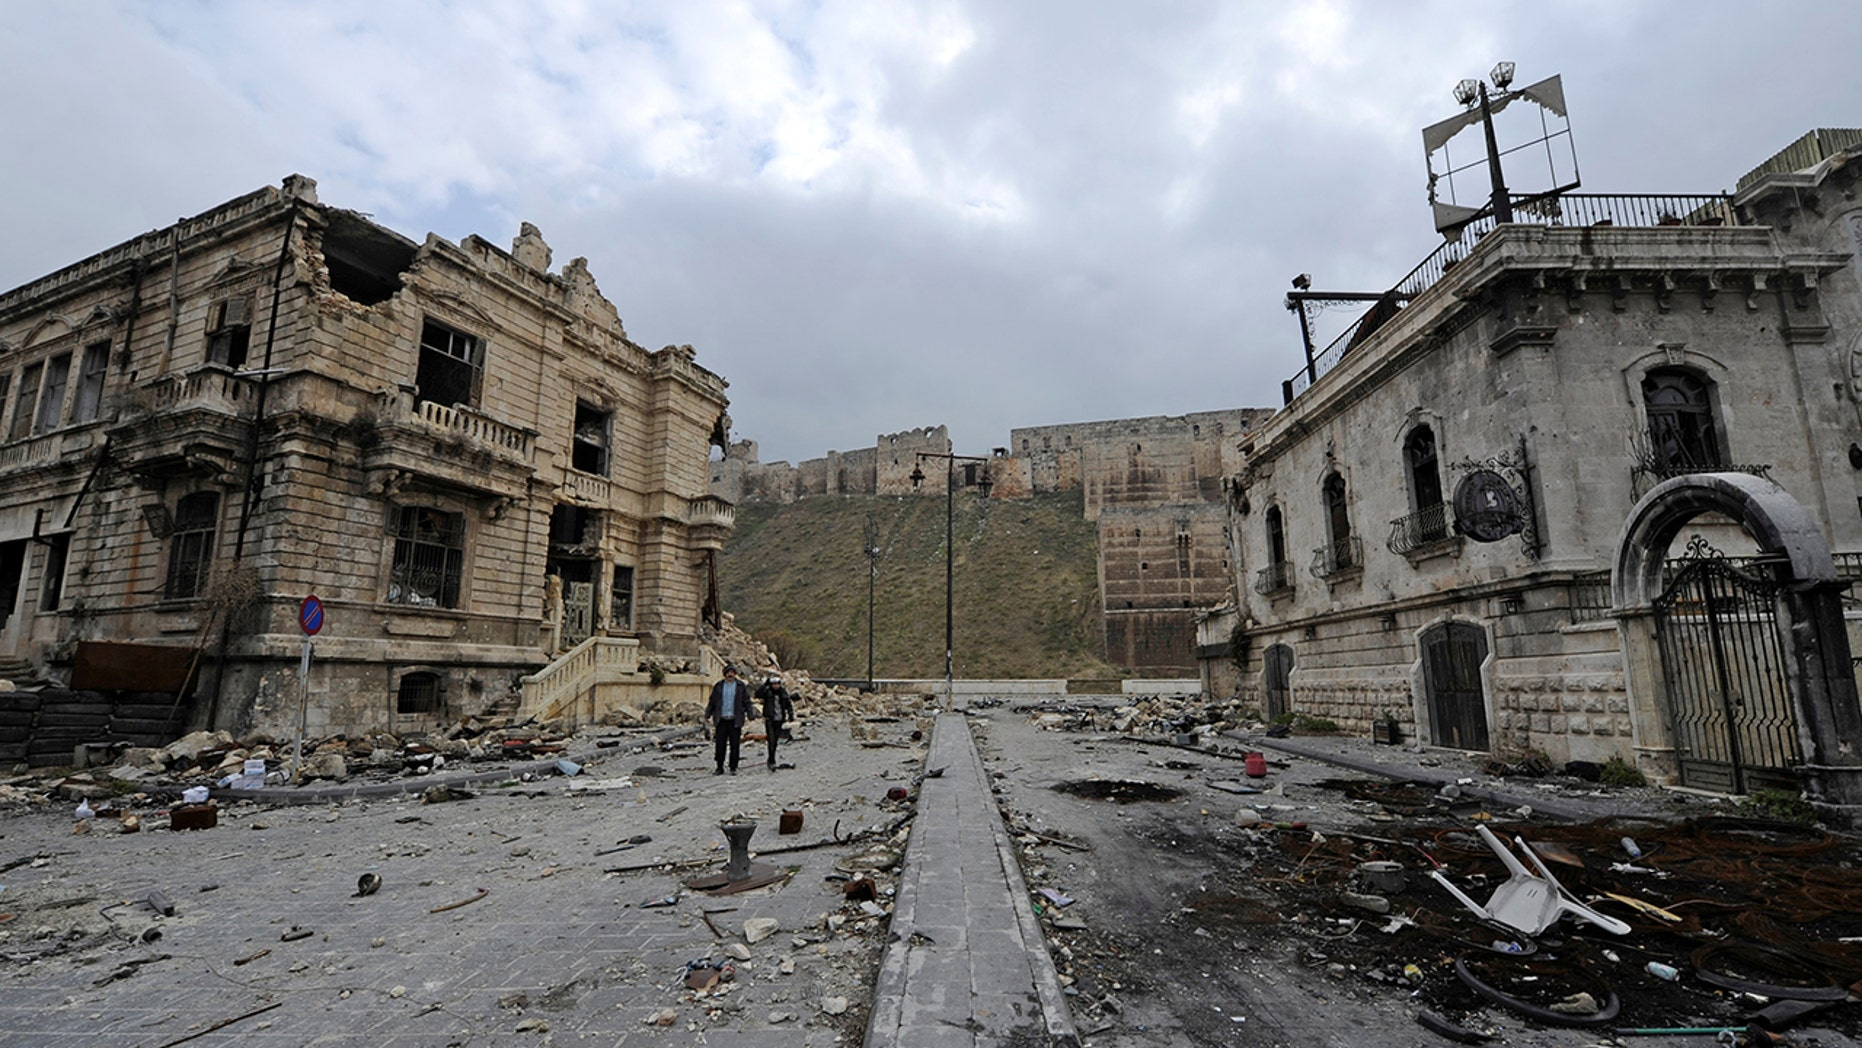 People walk past the old customs buildings (L) and Peoria restaurant (R) near Aleppo's historic citadel, in the government controlled area of the city, Syria December 17, 2016. REUTERS/Omar Sanadiki - RC1A5D700FD0